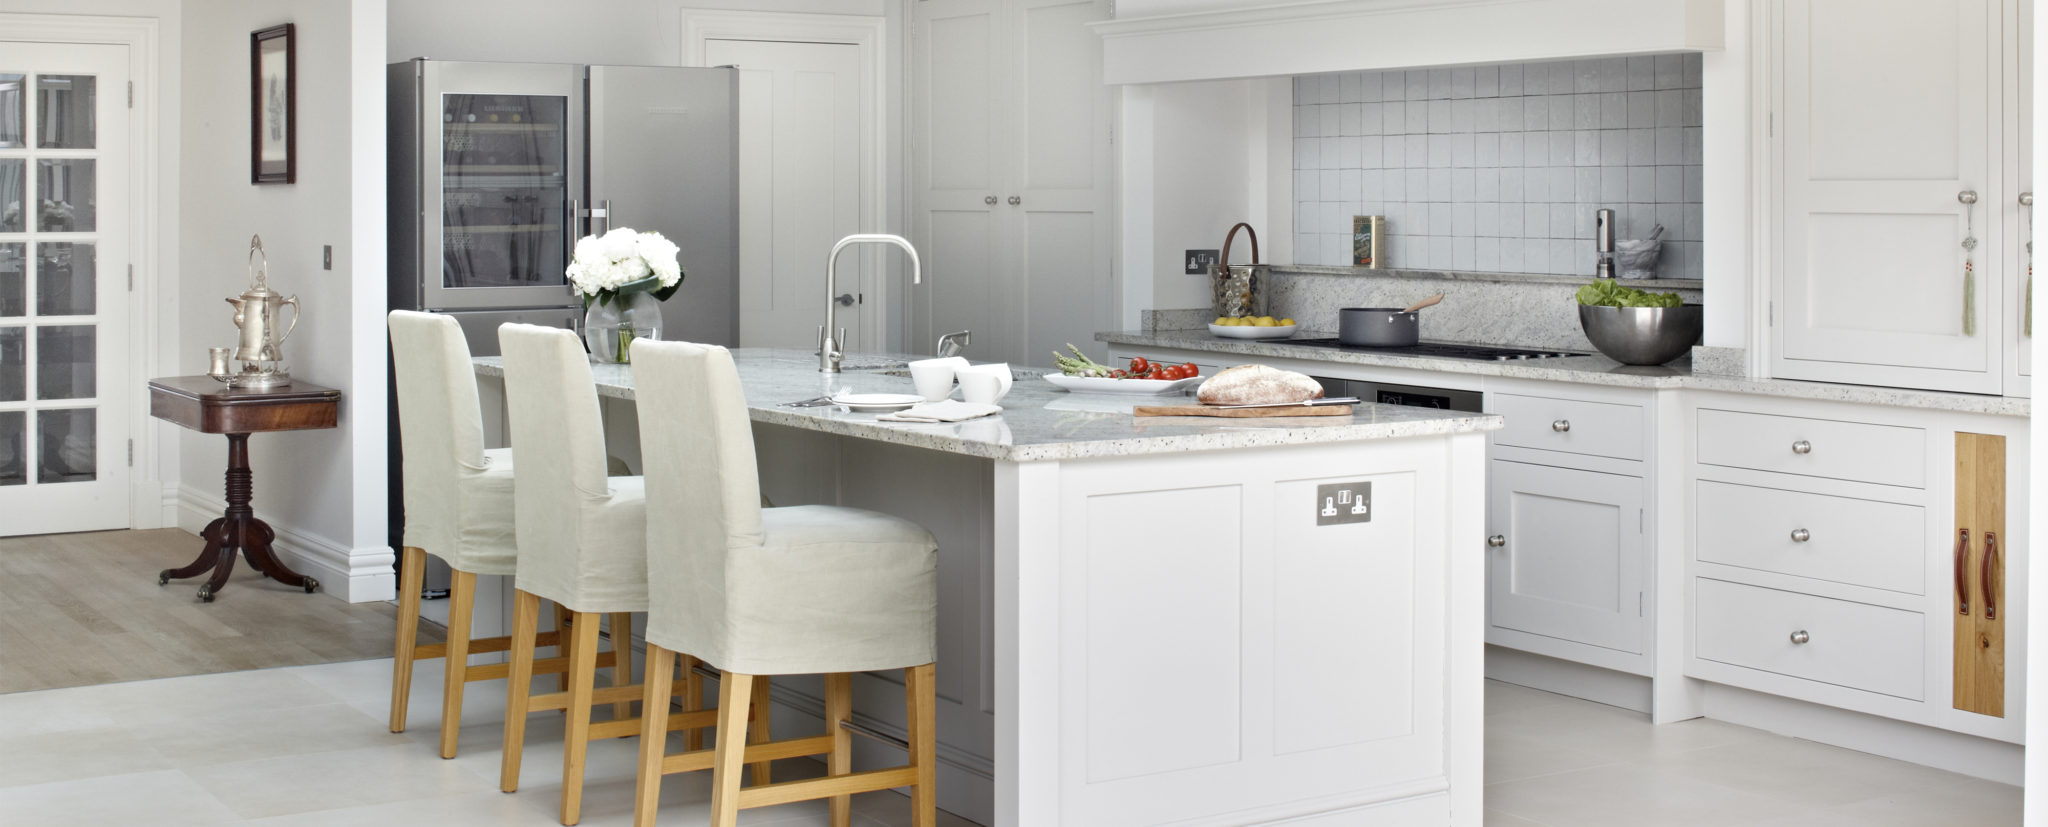 kitchen design surrey surrey country kitchen design bespoke fitted kitchens by 1372